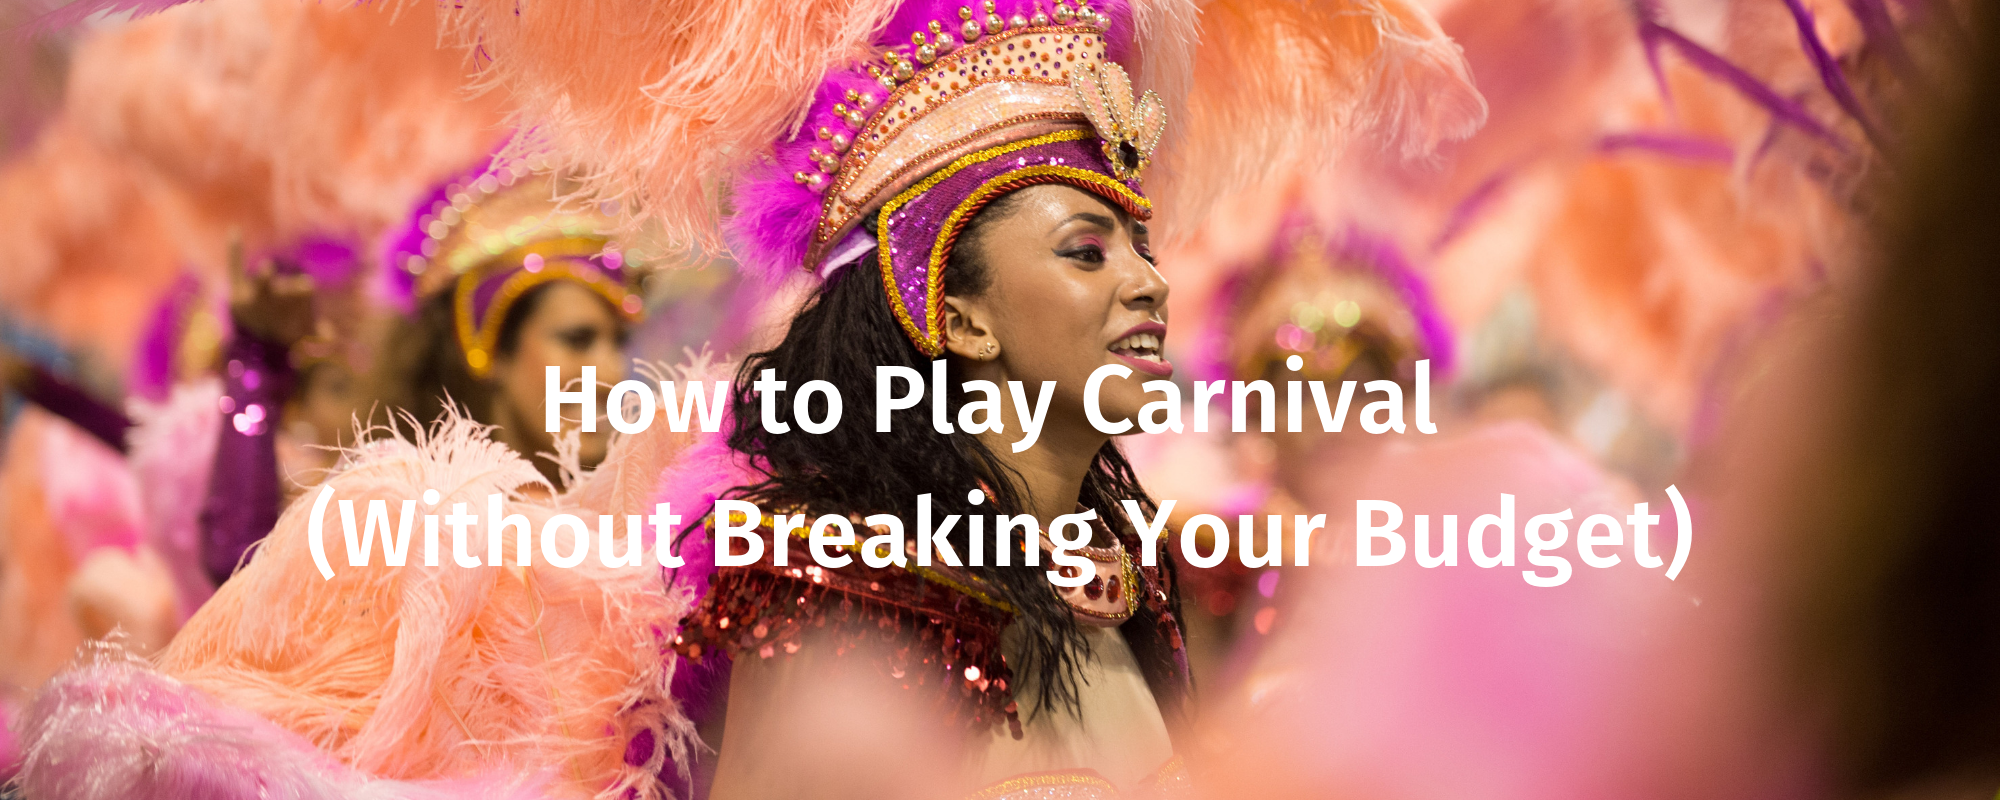 How to Play Carnival (Without Breaking Your Budget)